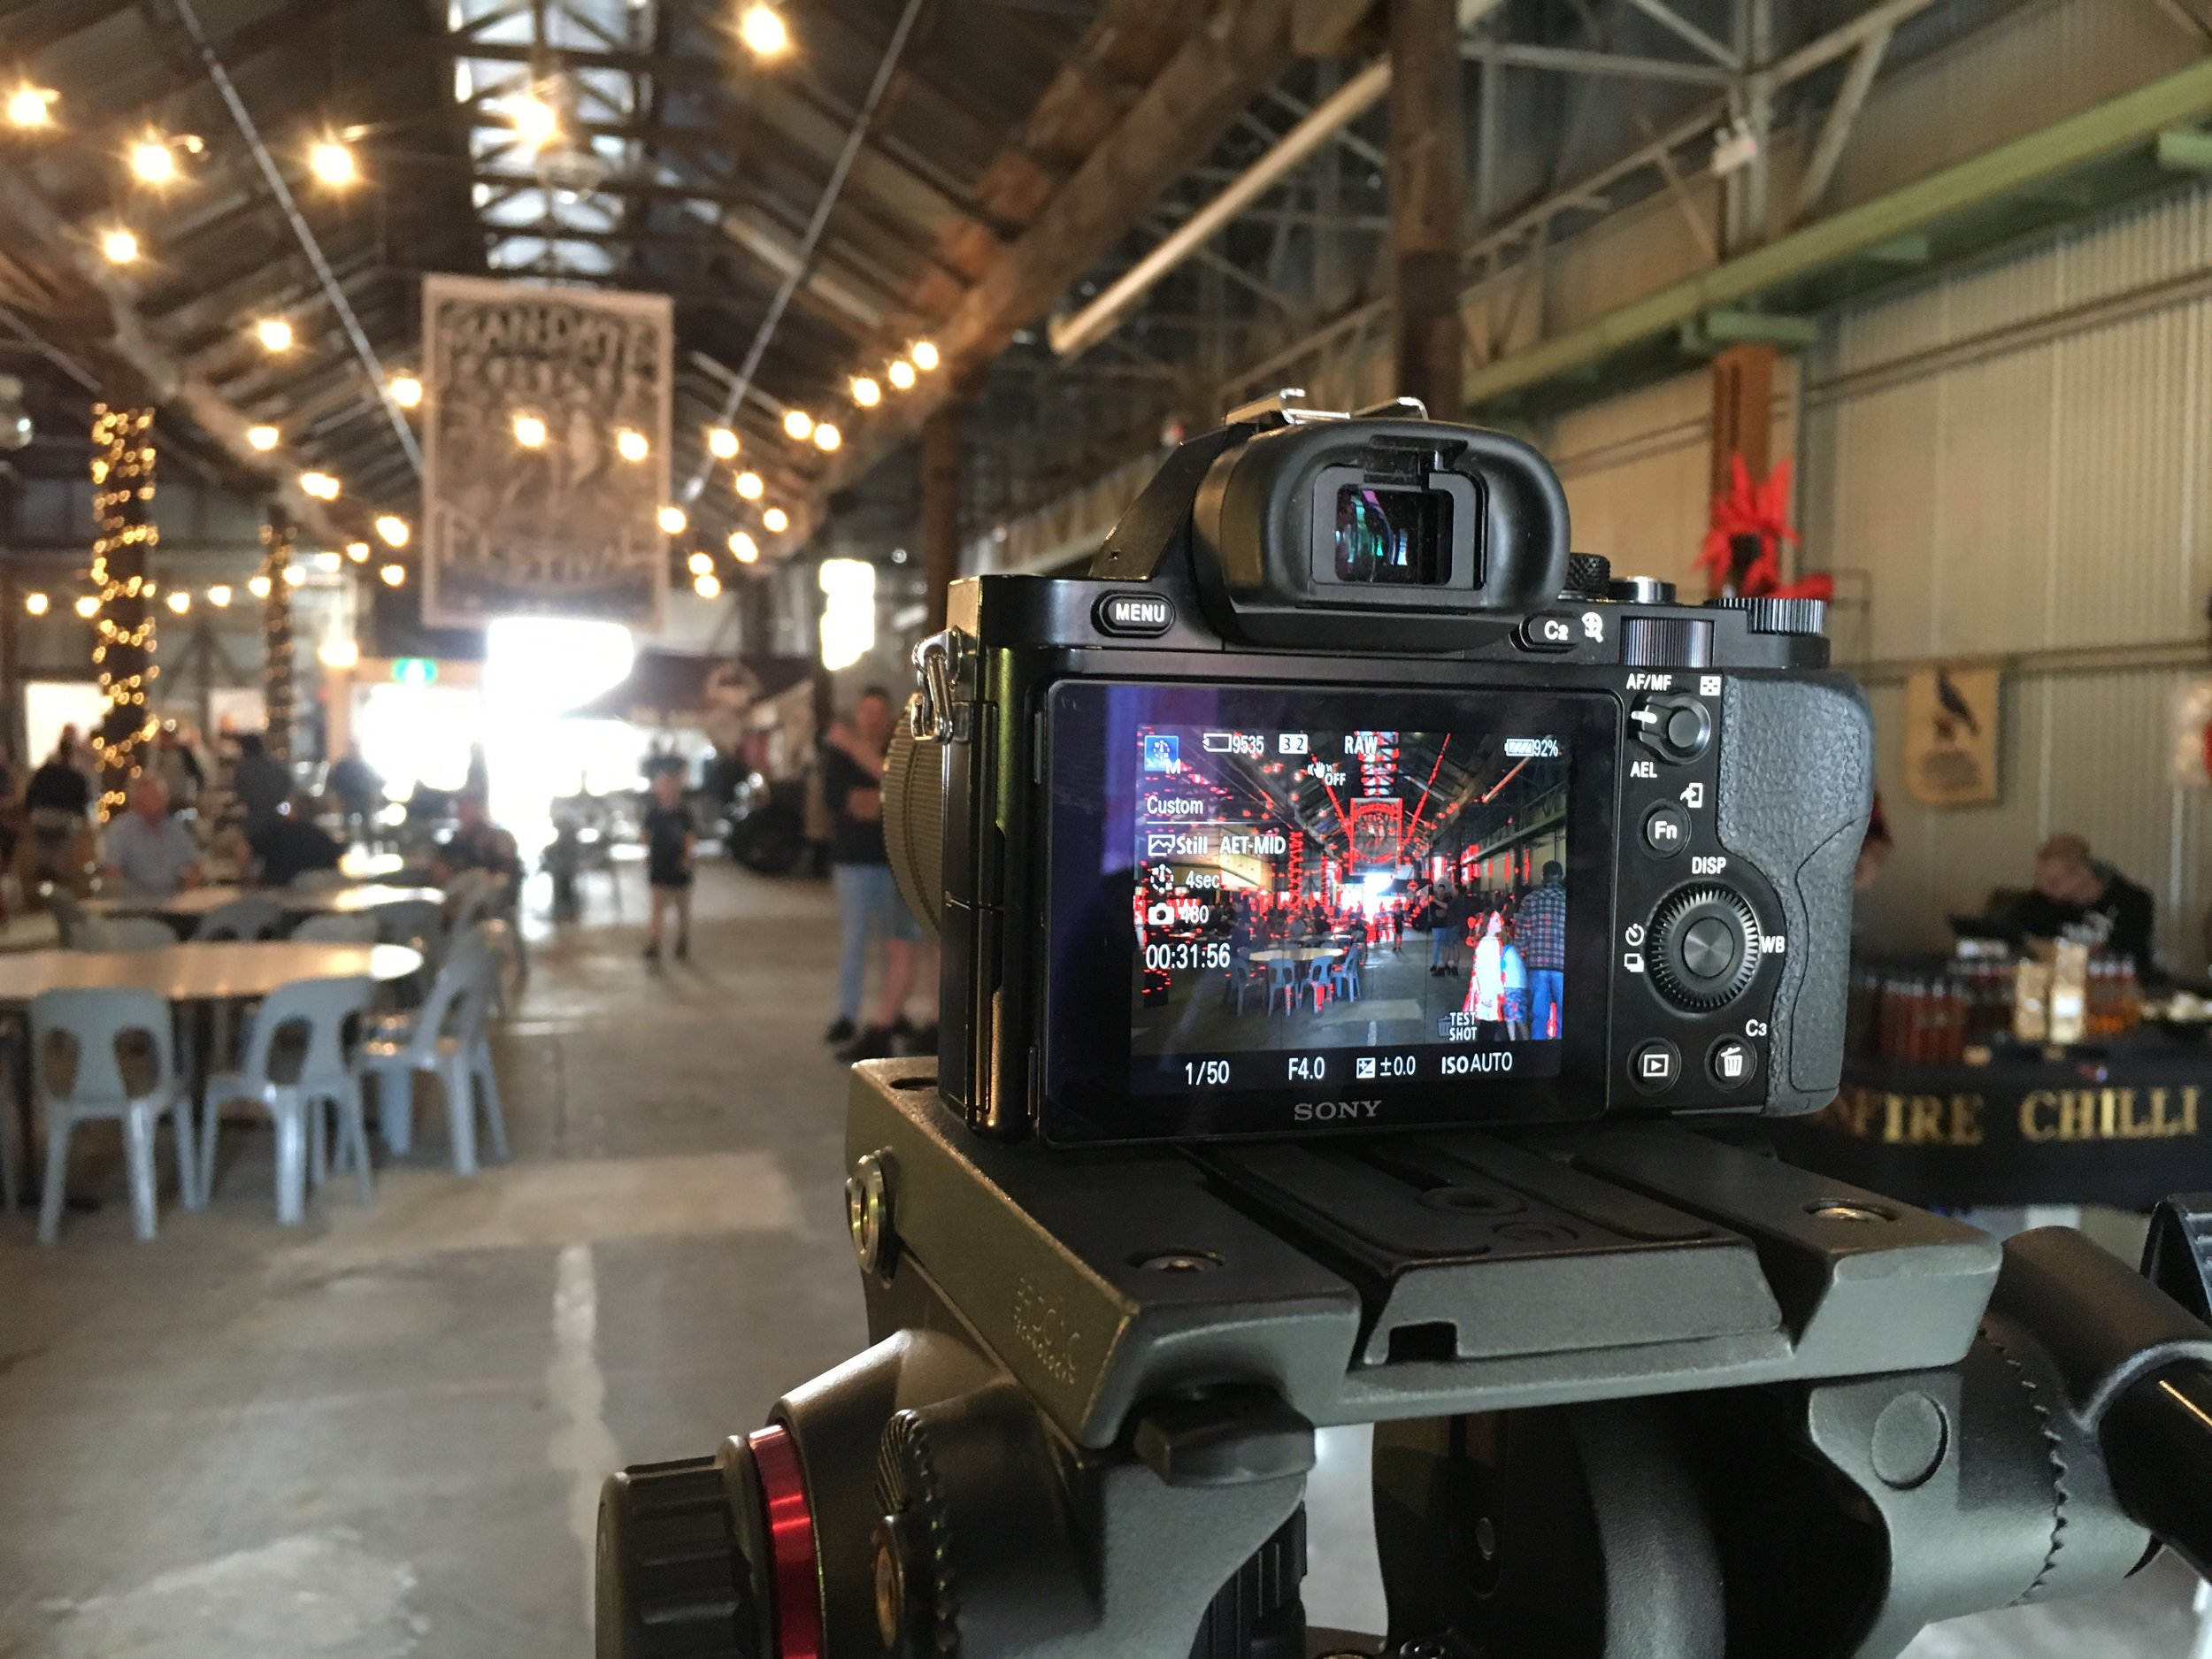 Toowoomba Video Production Live Stream Event